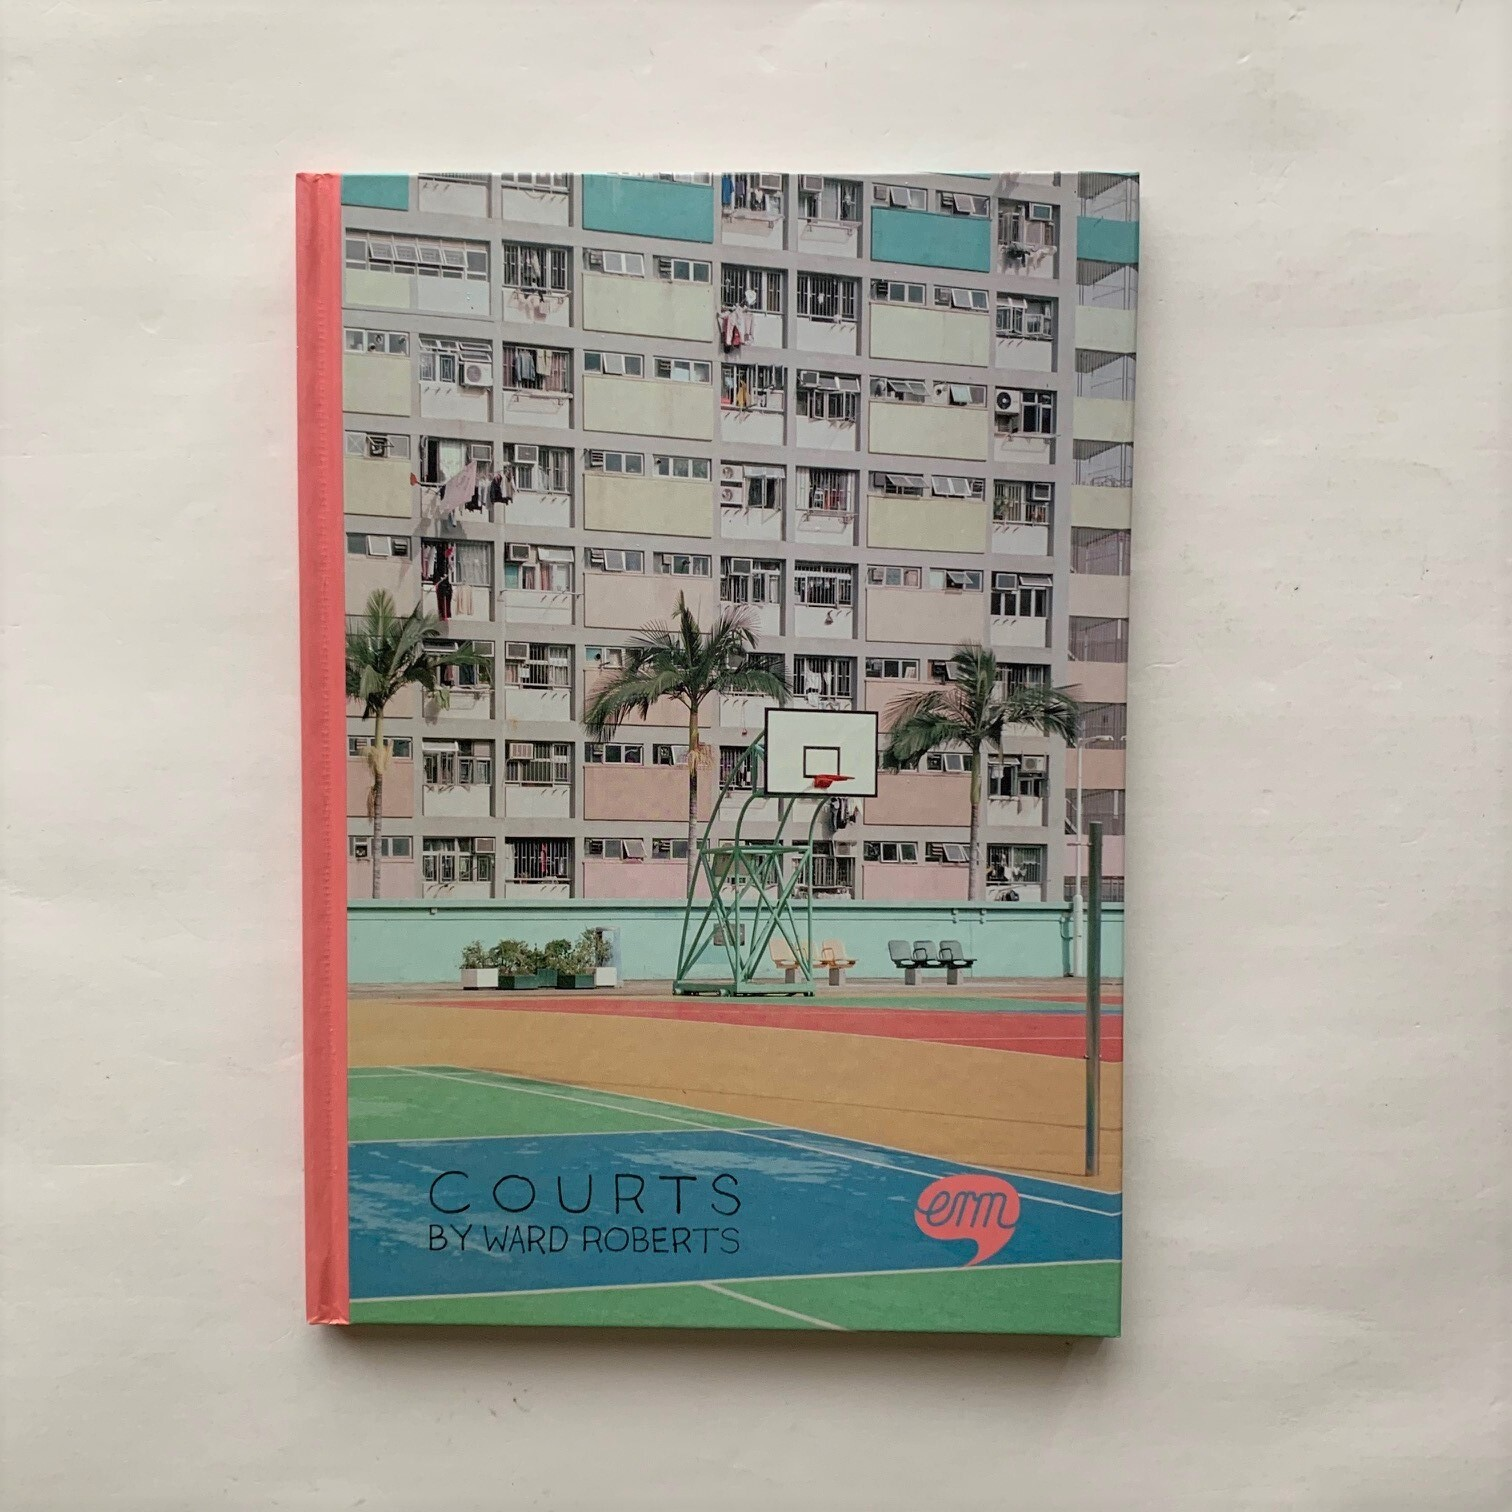 Courts by Ward Roberts / Erm Books